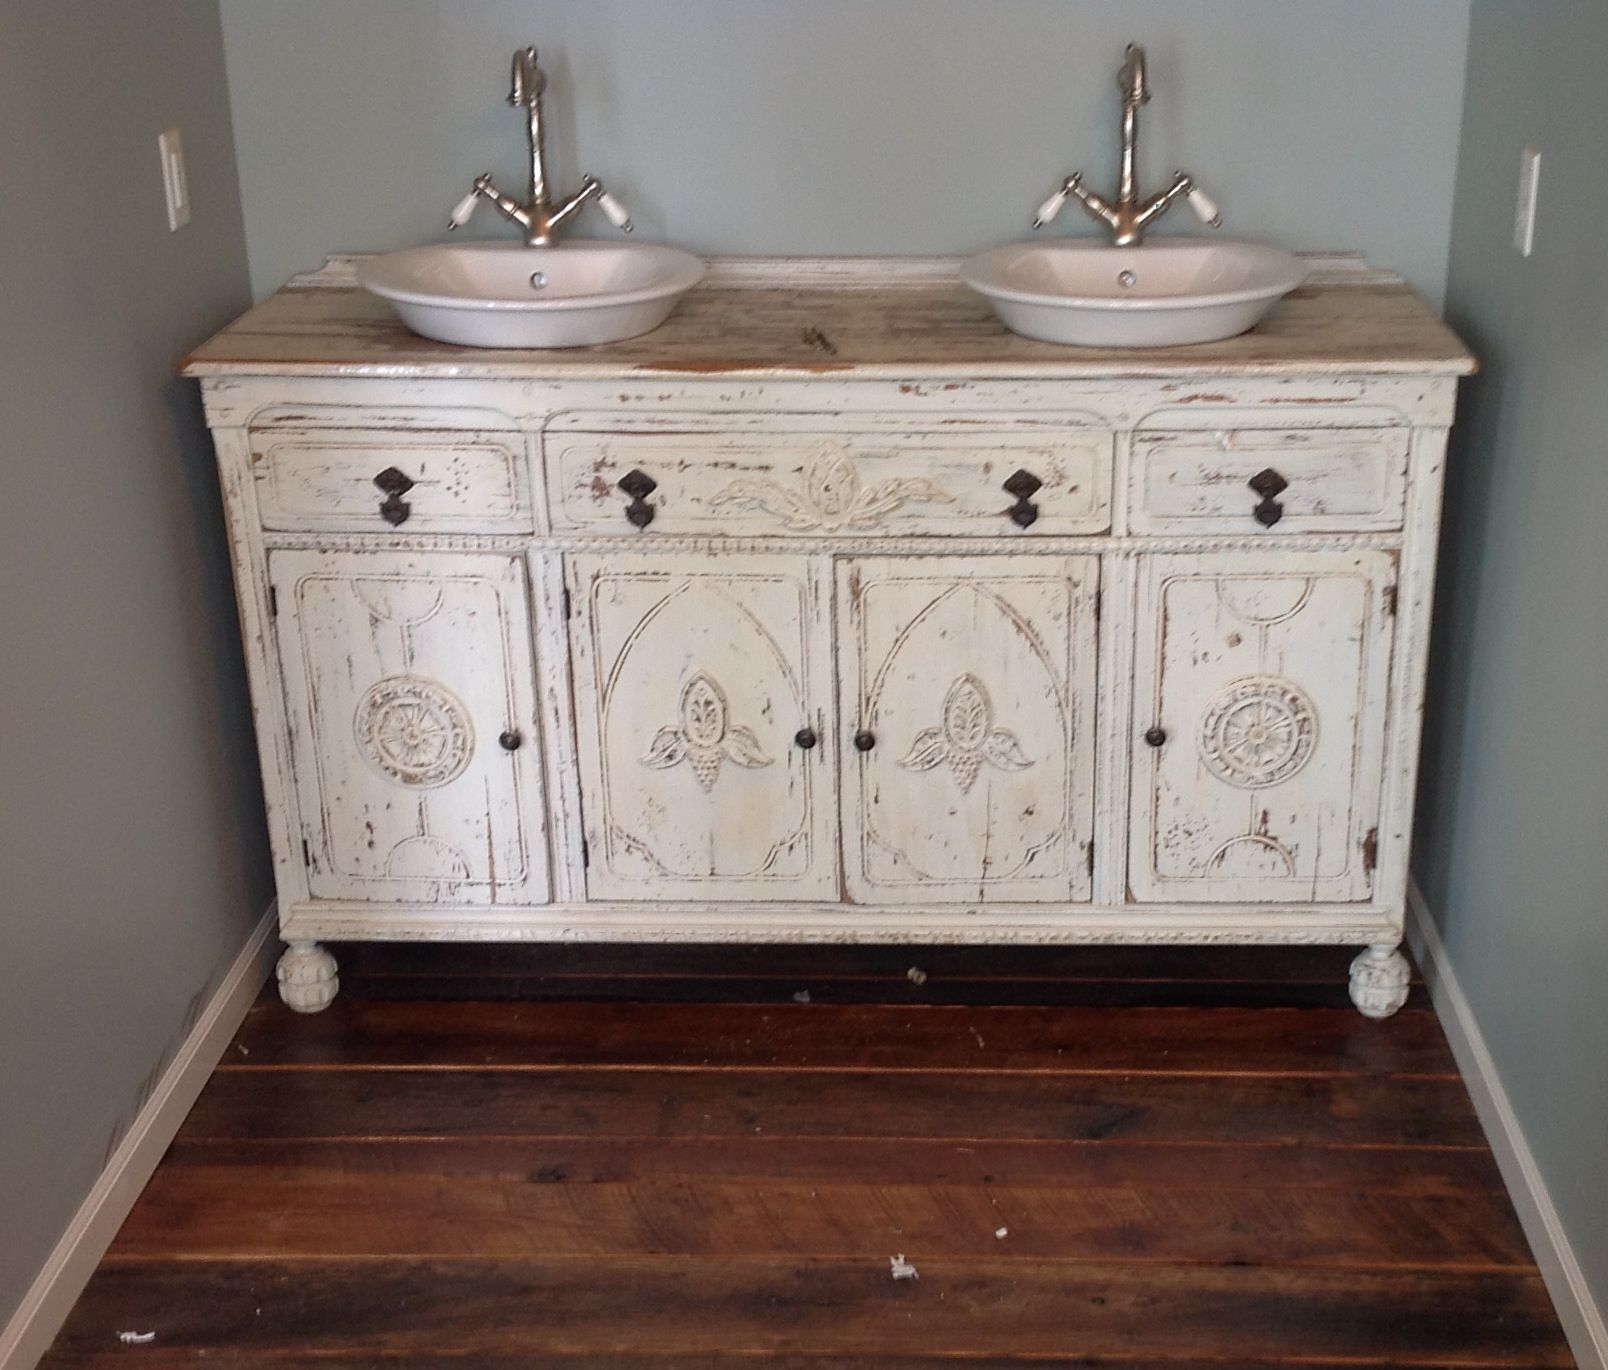 Painted Shabby Chic Repurposed Bathroom Sink Vanity Repurposed From An Old Antique Buffet